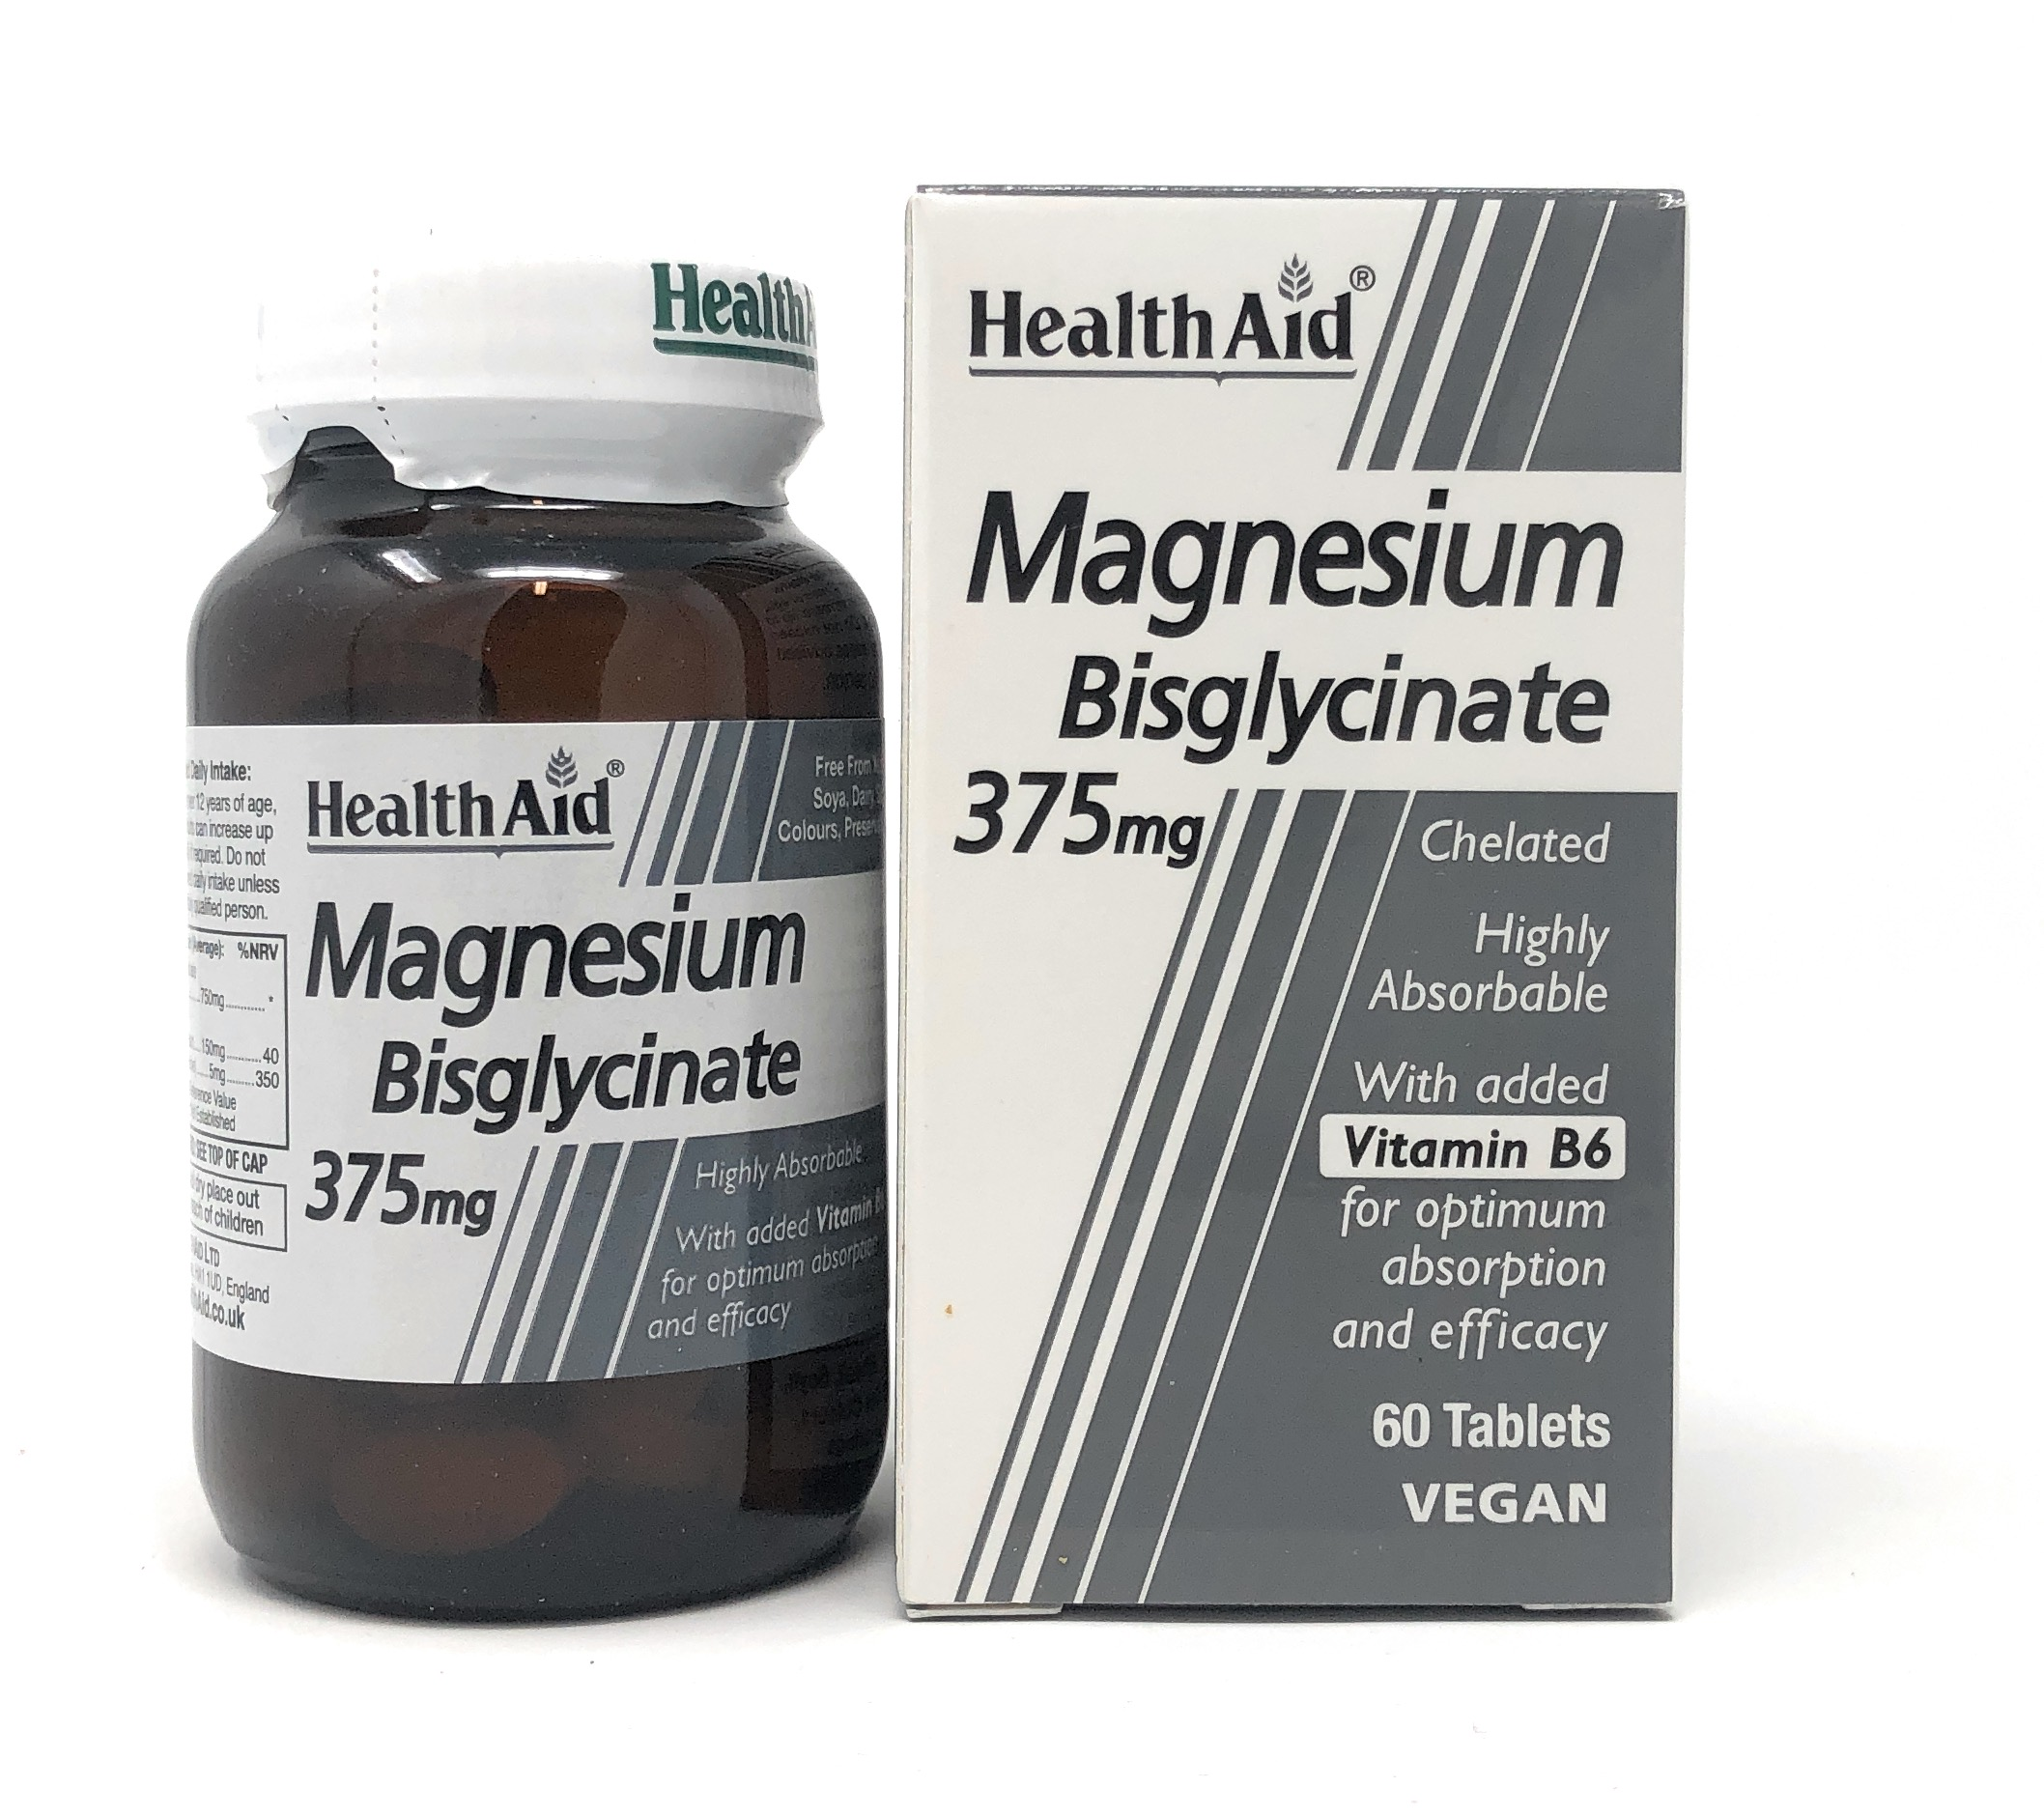 HealthAid Magnesium Bisglycinate 375mg with B6 60 Tabletten (vegan)